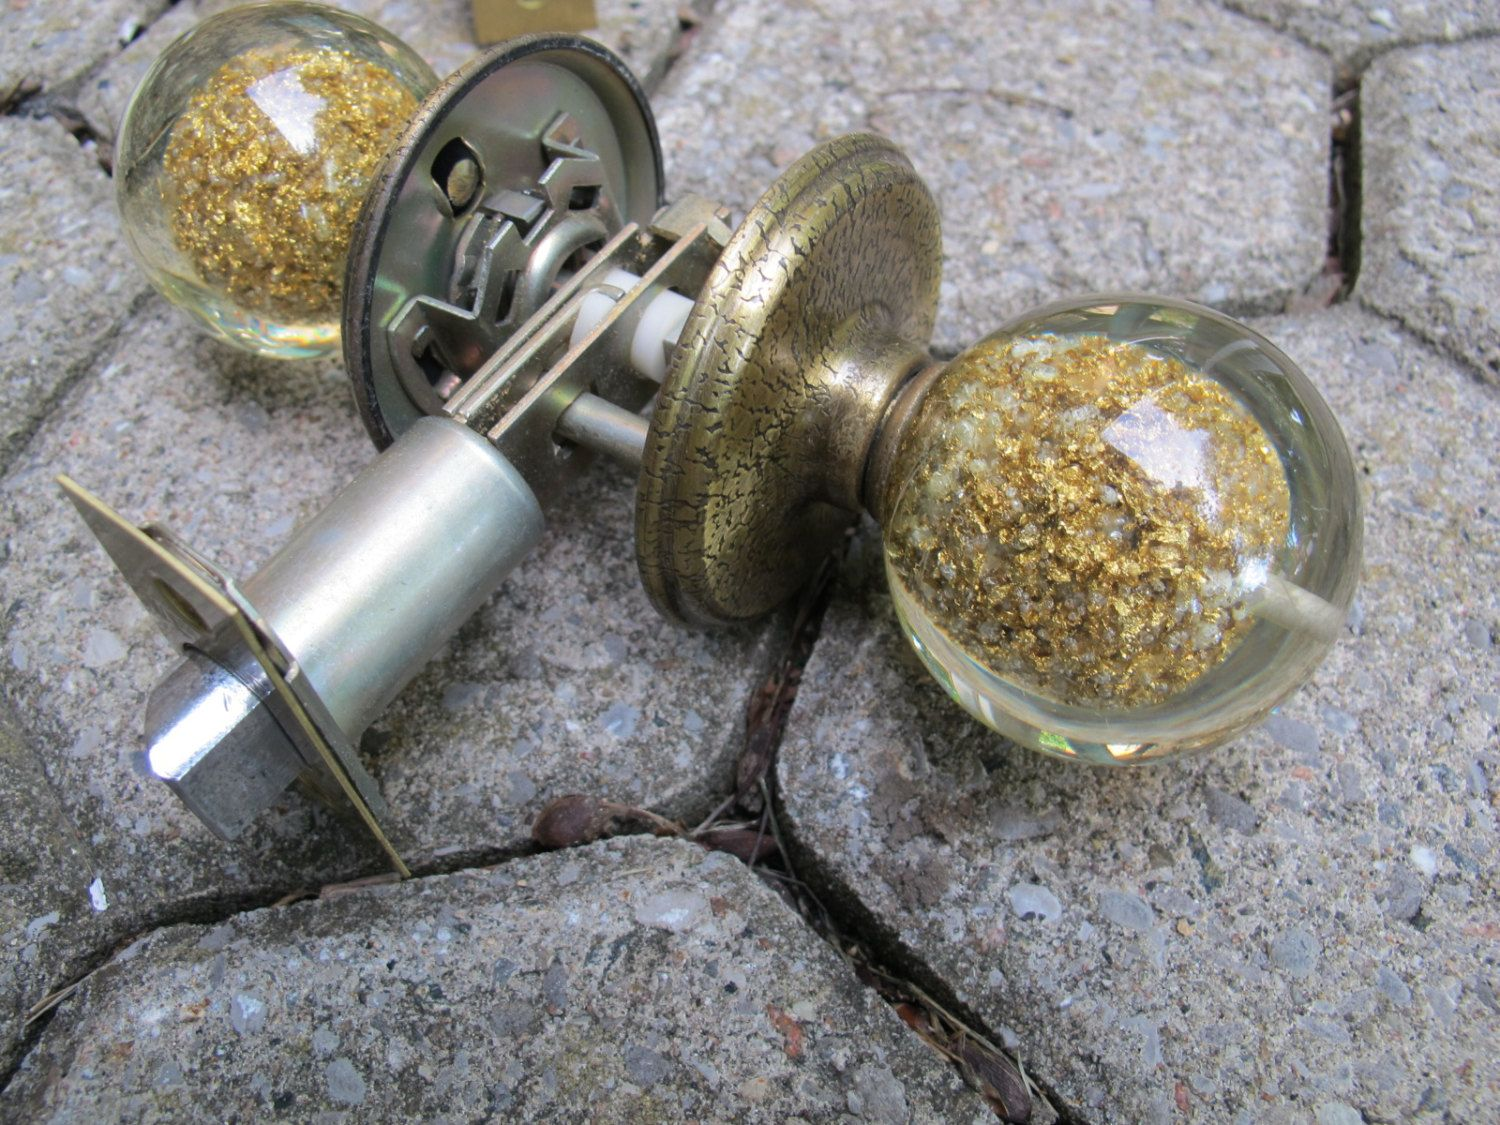 sale weiser bathroom door knob set acrylic balls with gold flakes gold flake and lucite door knob bathroom lock hardware